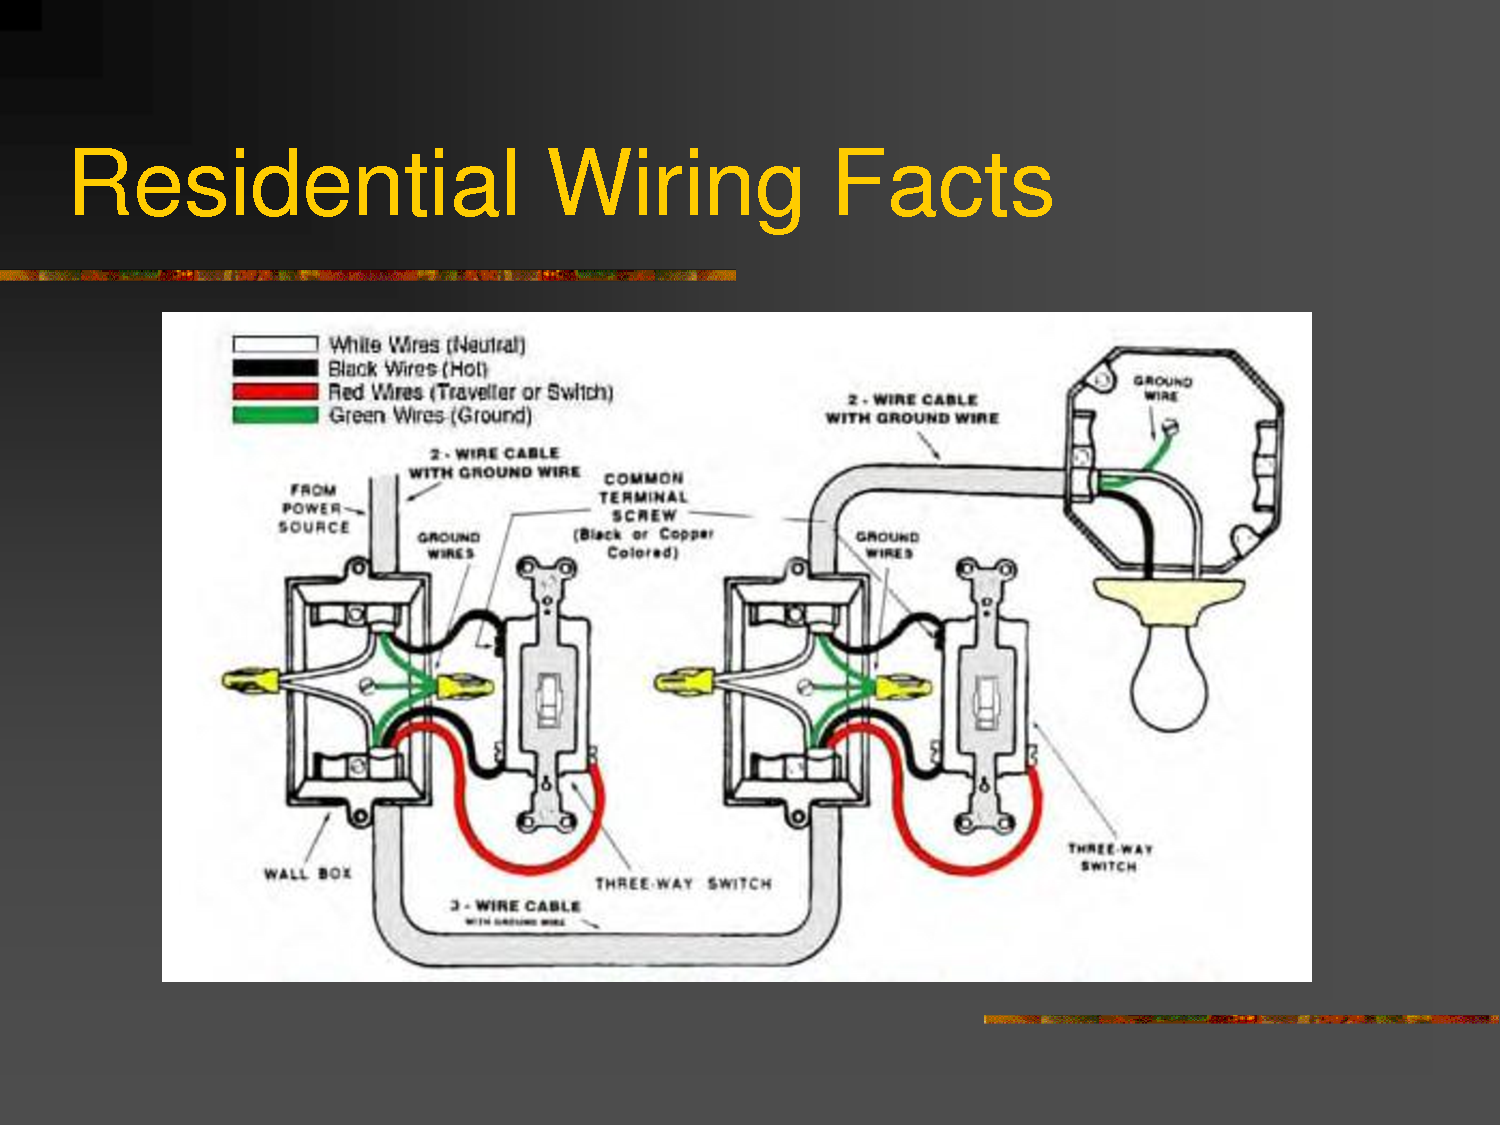 hight resolution of household electrical wiring diagrams wiring diagram sheet 4 best images of residential wiring diagrams house electrical